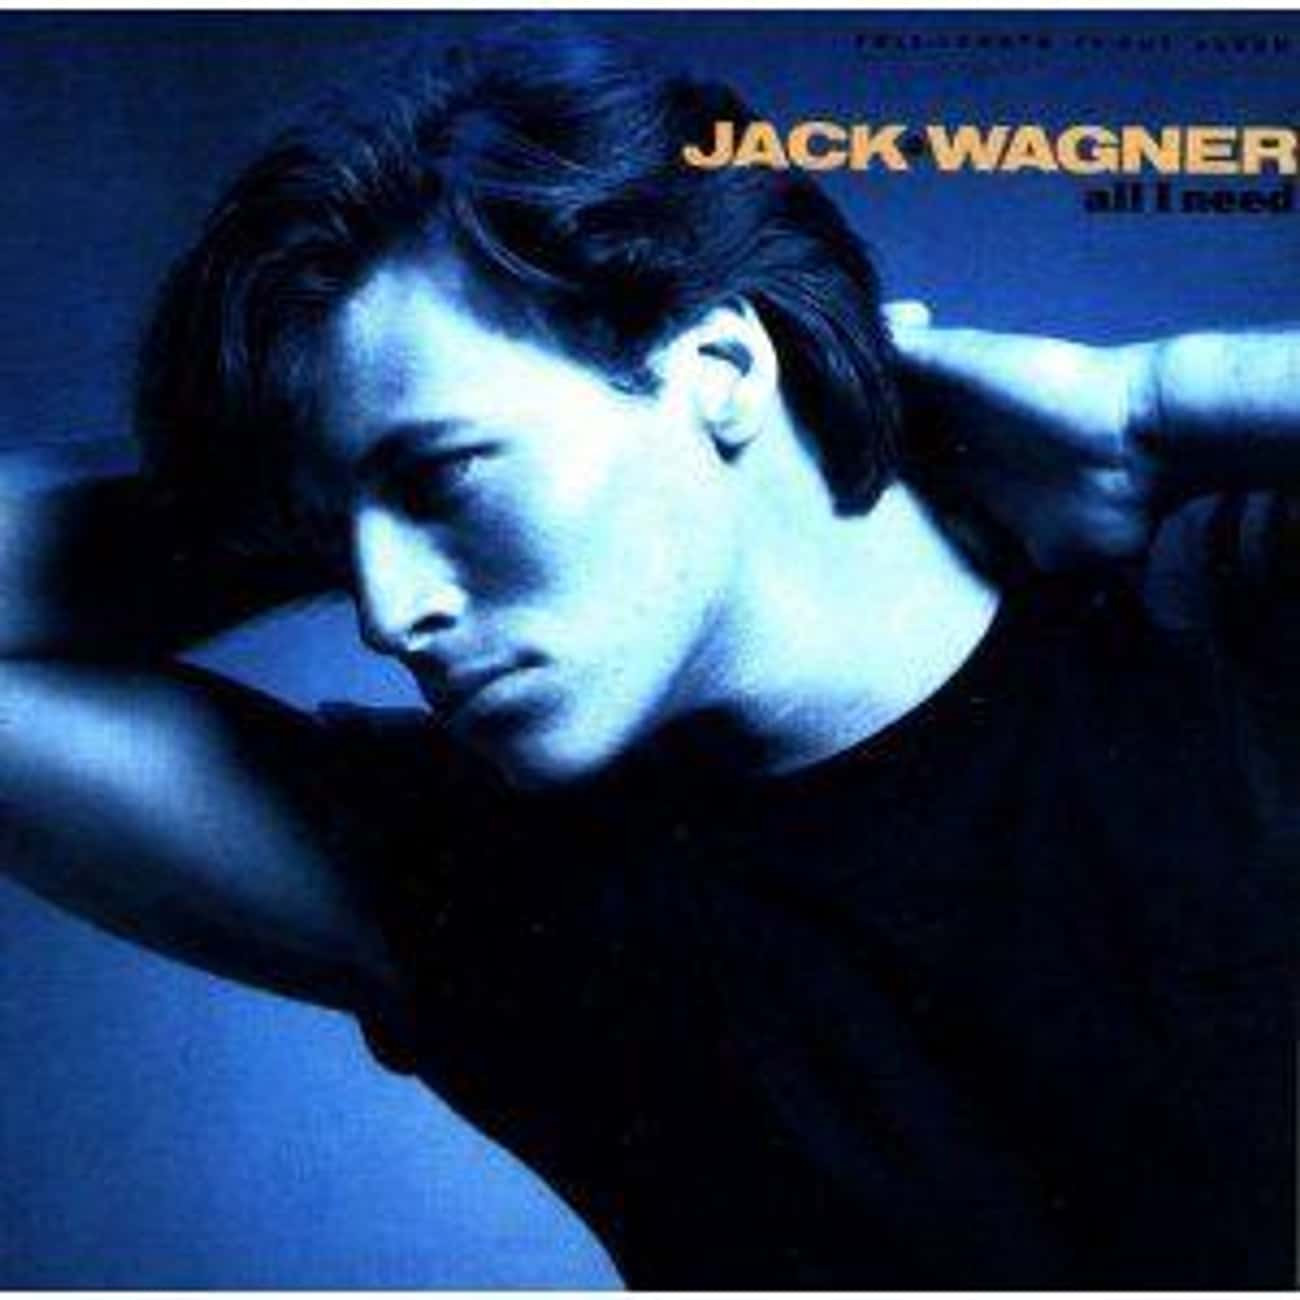 Jack Wagner: 'All I Need' is listed (or ranked) 4 on the list Which '80s Actor Or Actress Had The Most Impressive Album?